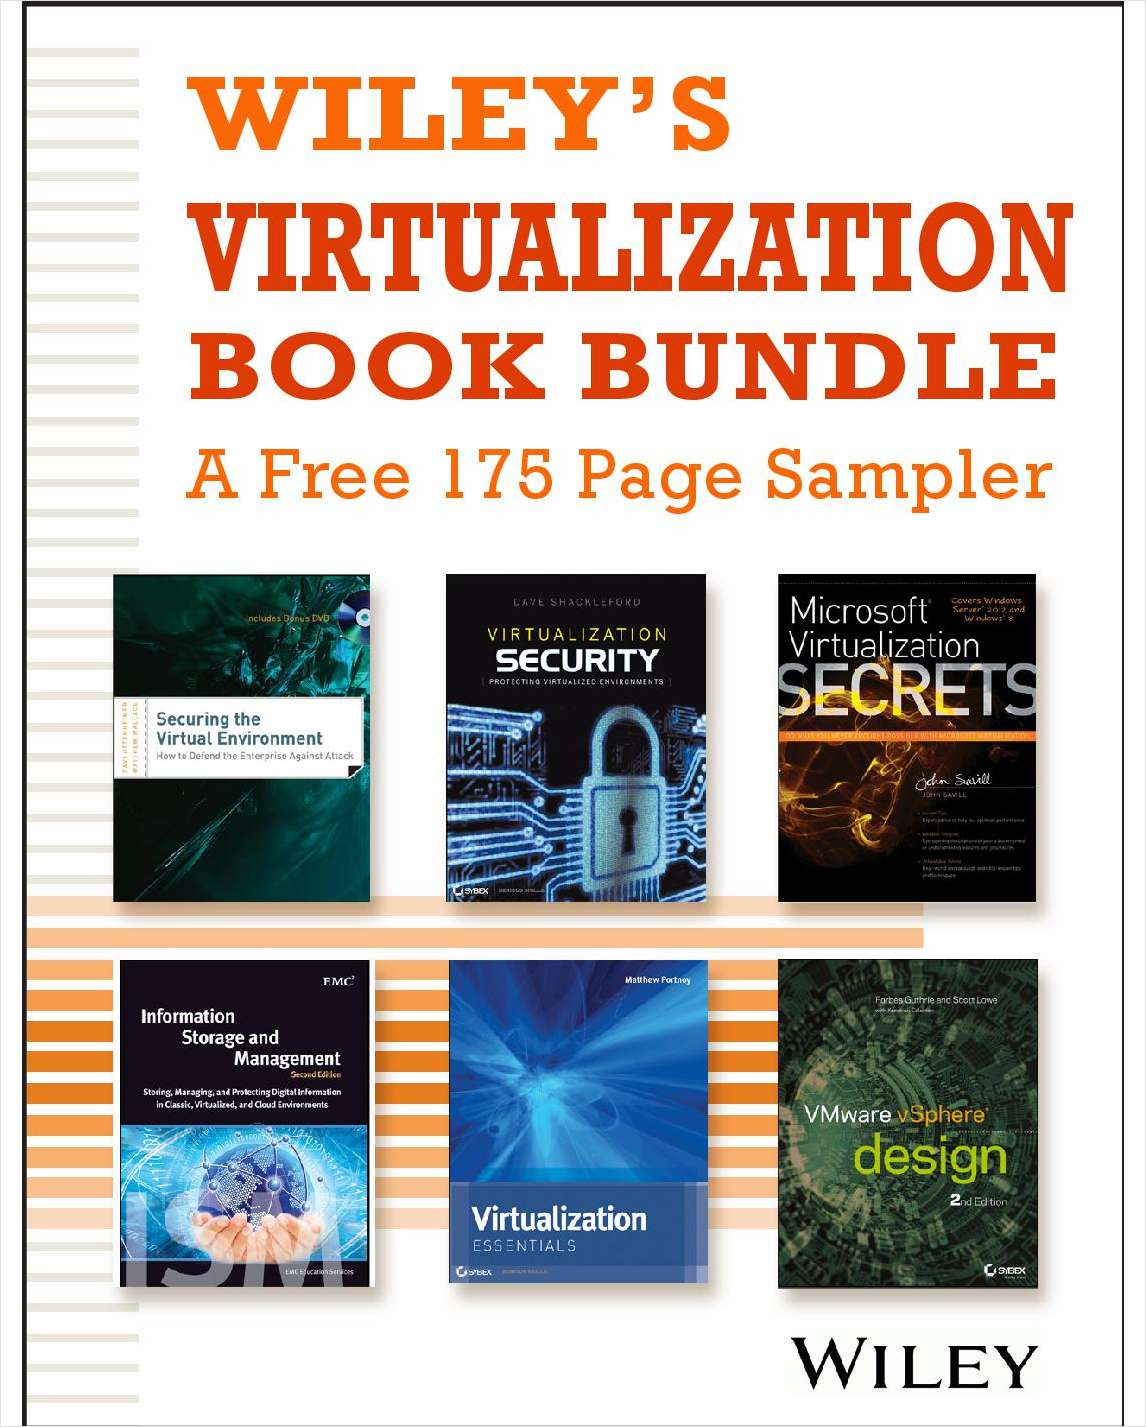 Wiley's Virtualization Book Bundle -- A Free 175 Page Sampler